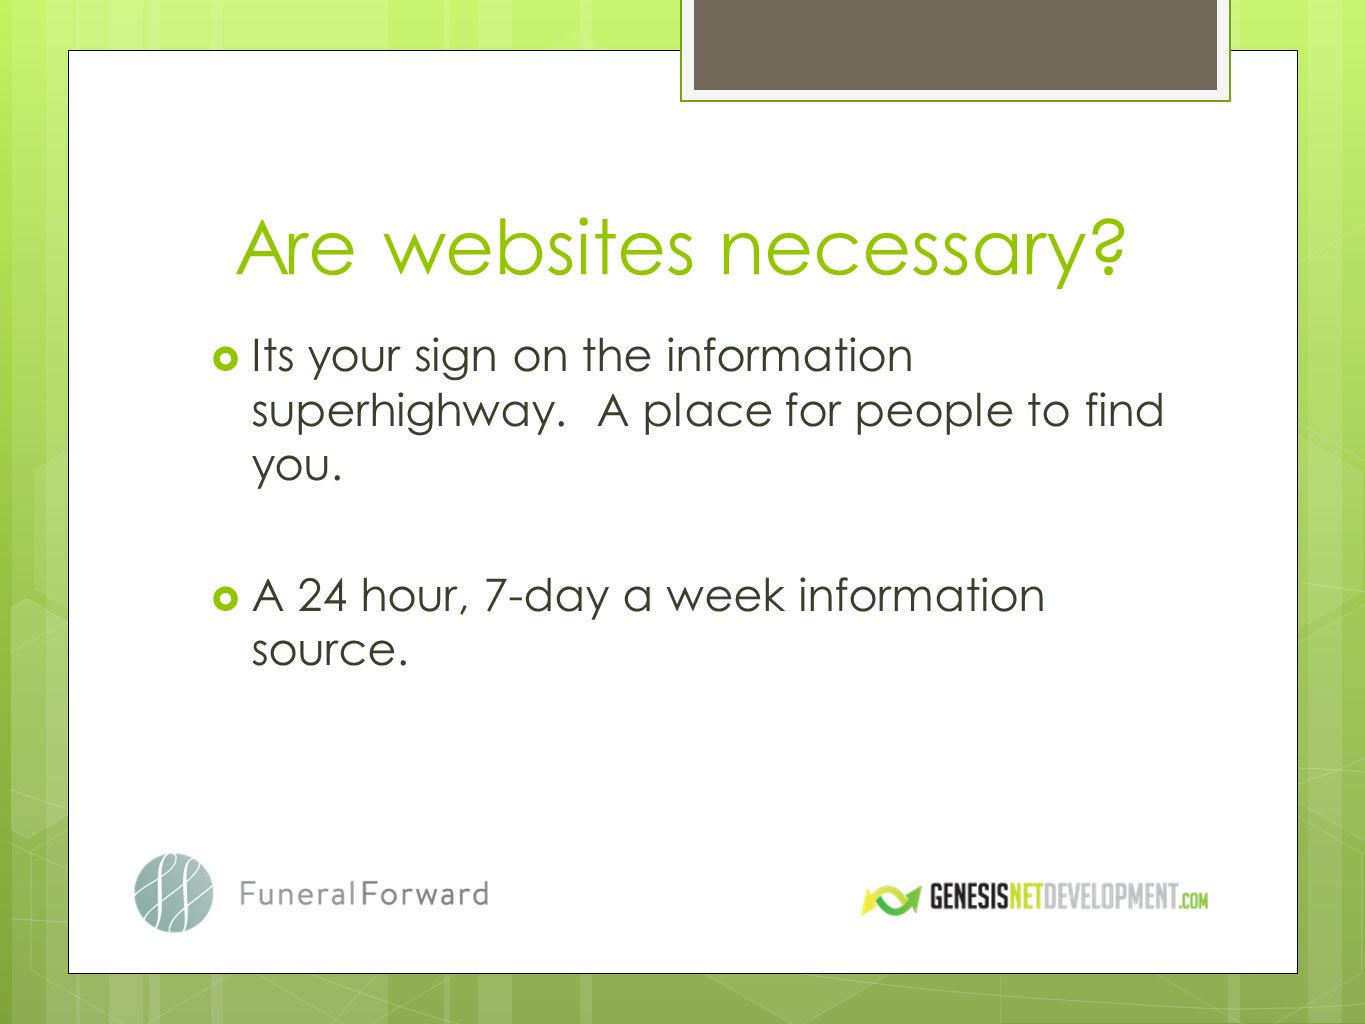 Are websites necessary? Its your sign on the information superhighway. A place for people to find you. A 24 hour, 7-day a week information source.